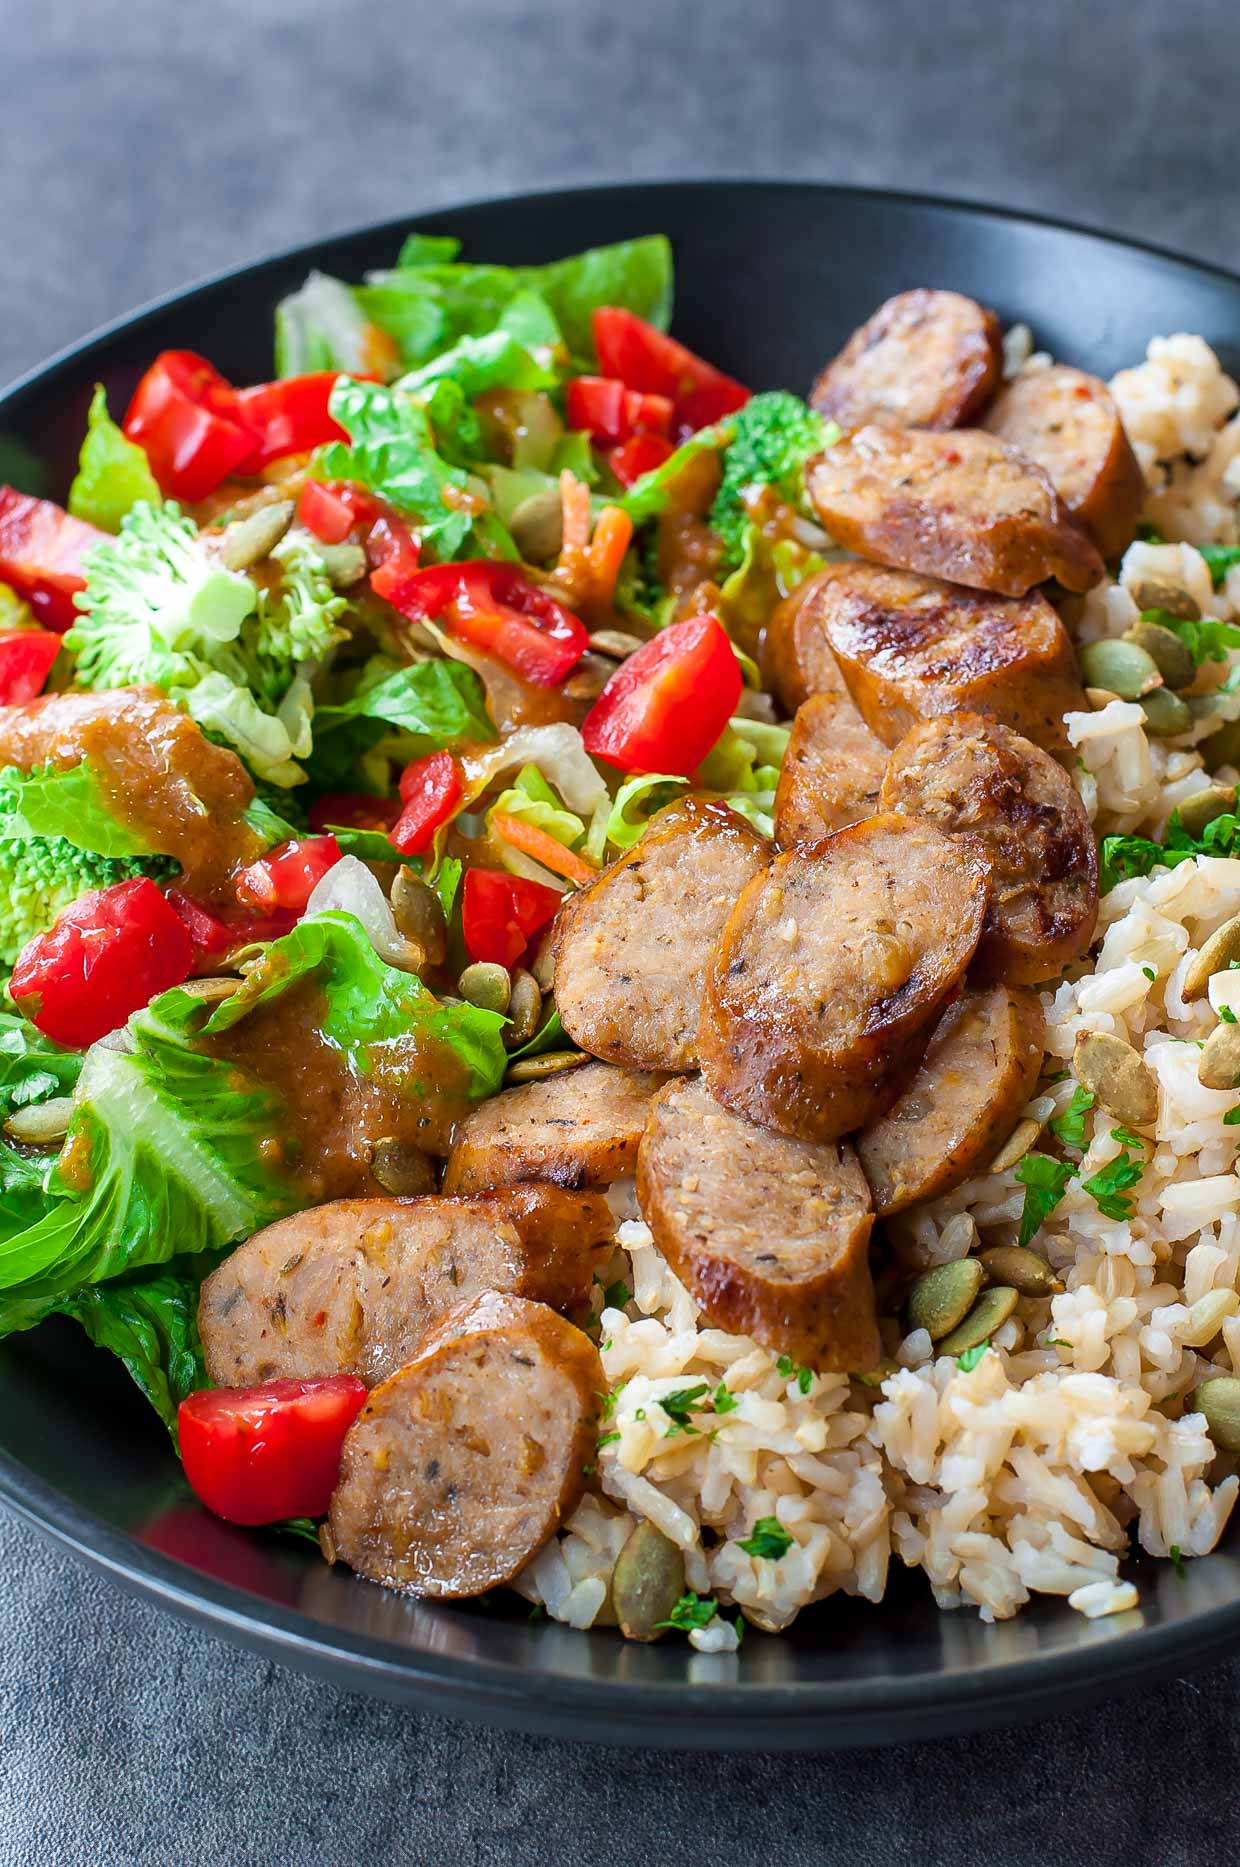 These fuss-free Sausage and Veggie Rice Bowls make a quick and easy lunch or dinner! Gluten-free with vegan, vegetarian, and paleo options - heck yes!